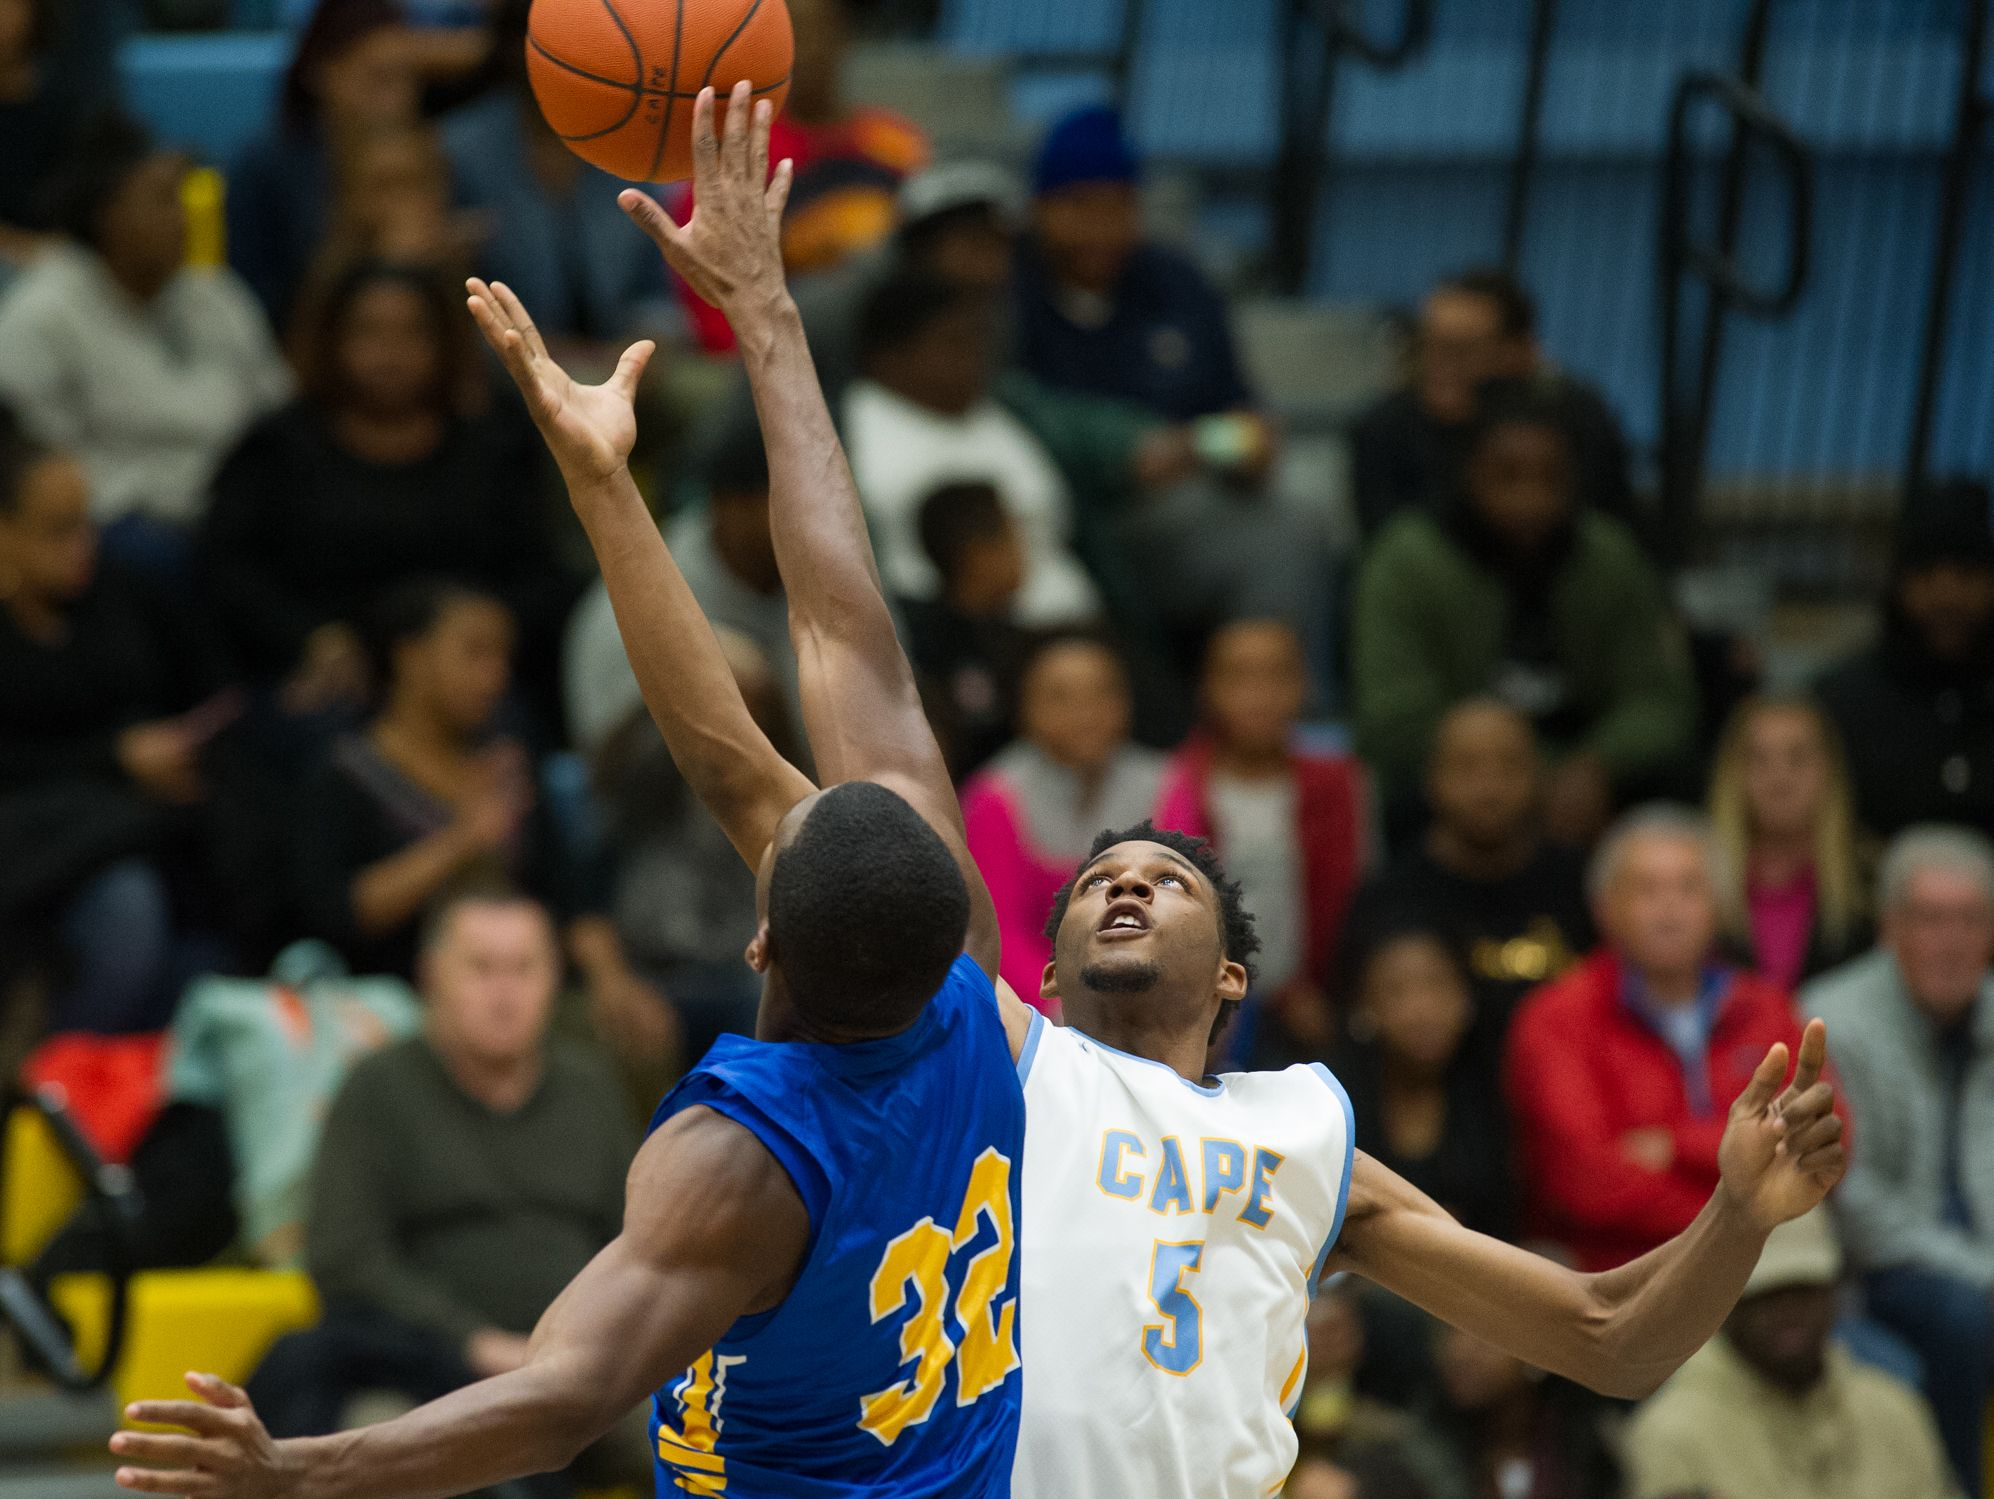 Caesar Rodney's Joseph Williams (32) and Cape Henlopen's Randy Rickards (5) jump up for the opening tip off at their game at Cape Henlopen High School.